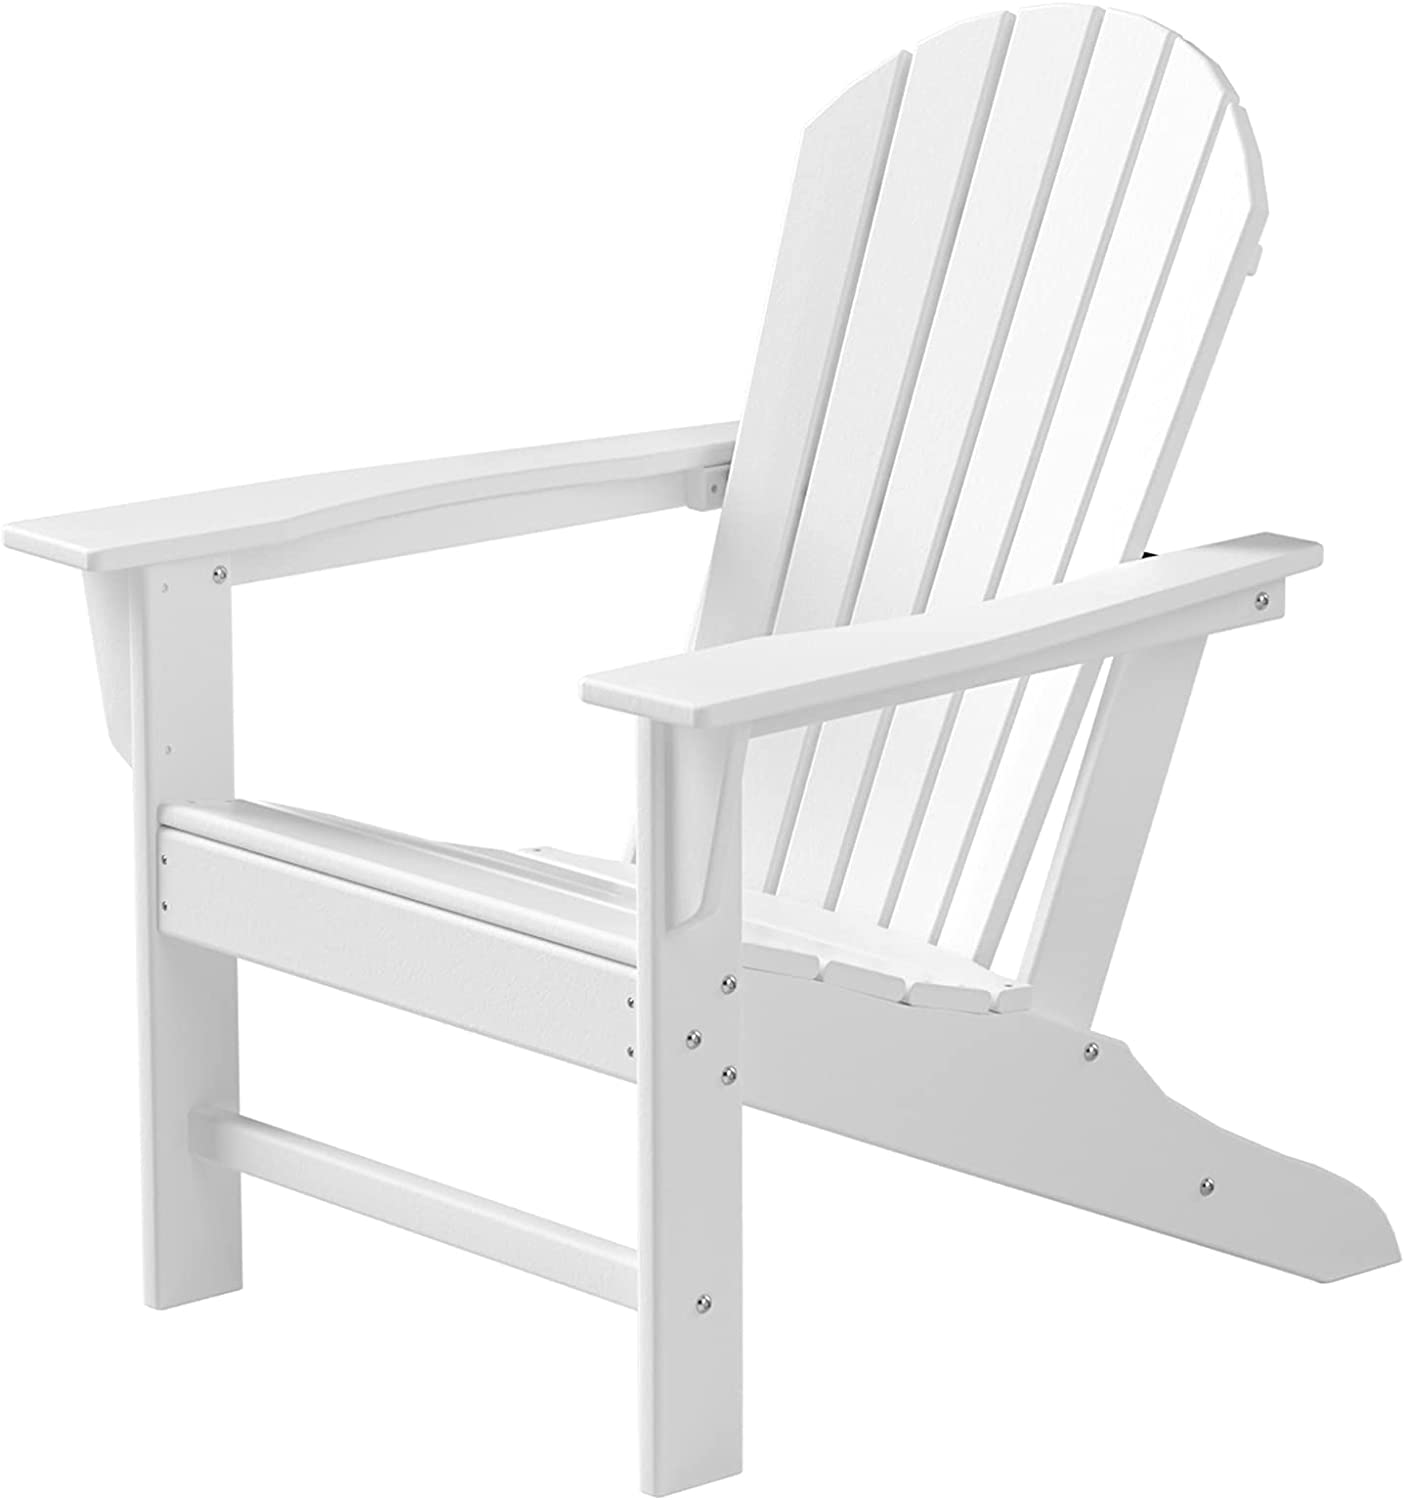 TRYZS Adirondack Chair, Oversized Patio Chair, Outdoor Lounger Lawn Chair, All-Weather| Fade-Resistant| Waterproof| Easy Maintenance, Perfect for Outdoor, Porch, Deck, Garden, and Lawn, Classic White : Patio, Lawn & Garden